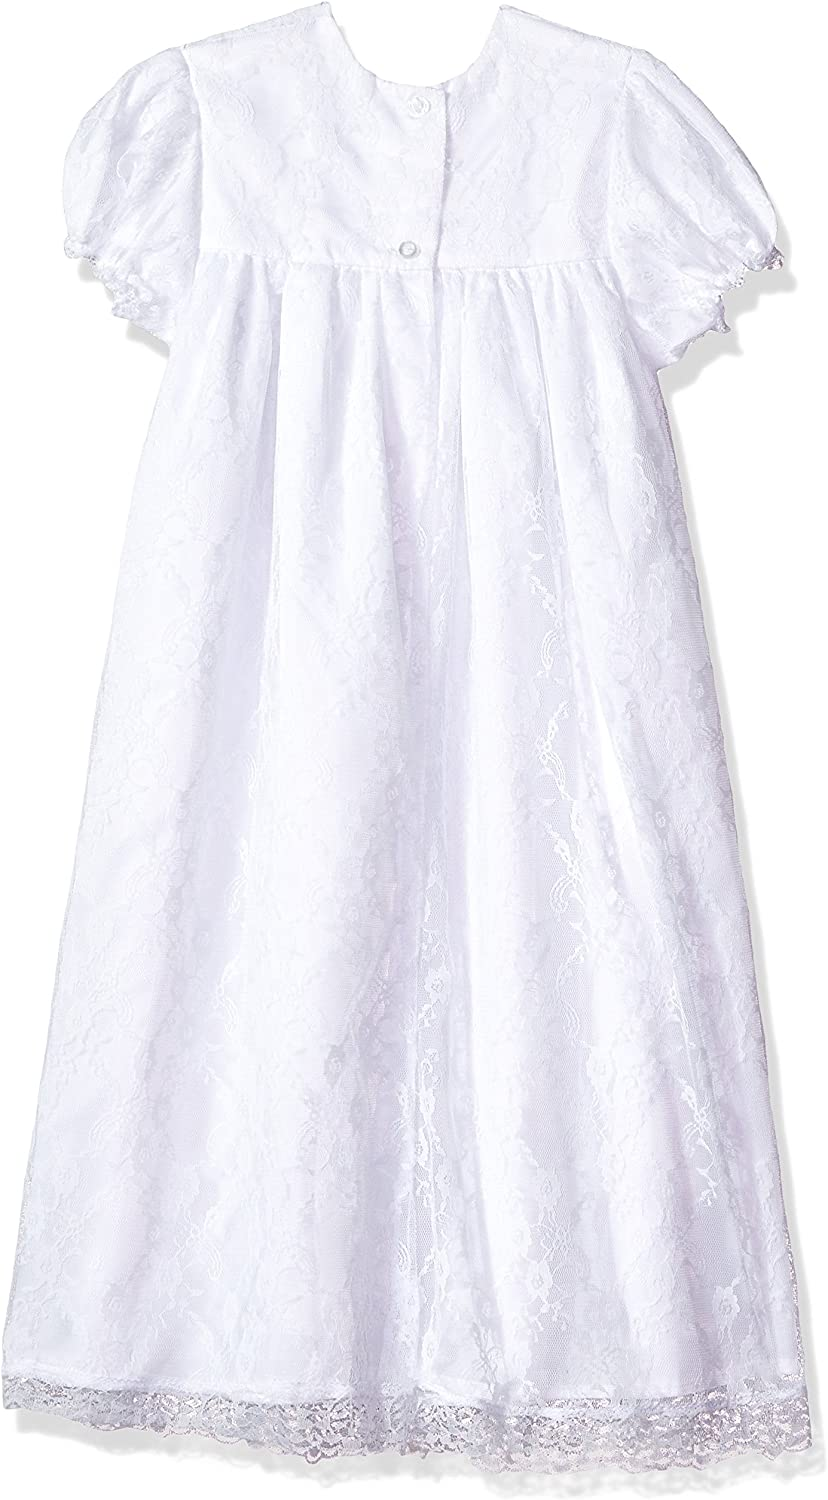 24m The Childrens Hour Baby Girls White Fully Lined Lace Gown /& Bonnett 3m